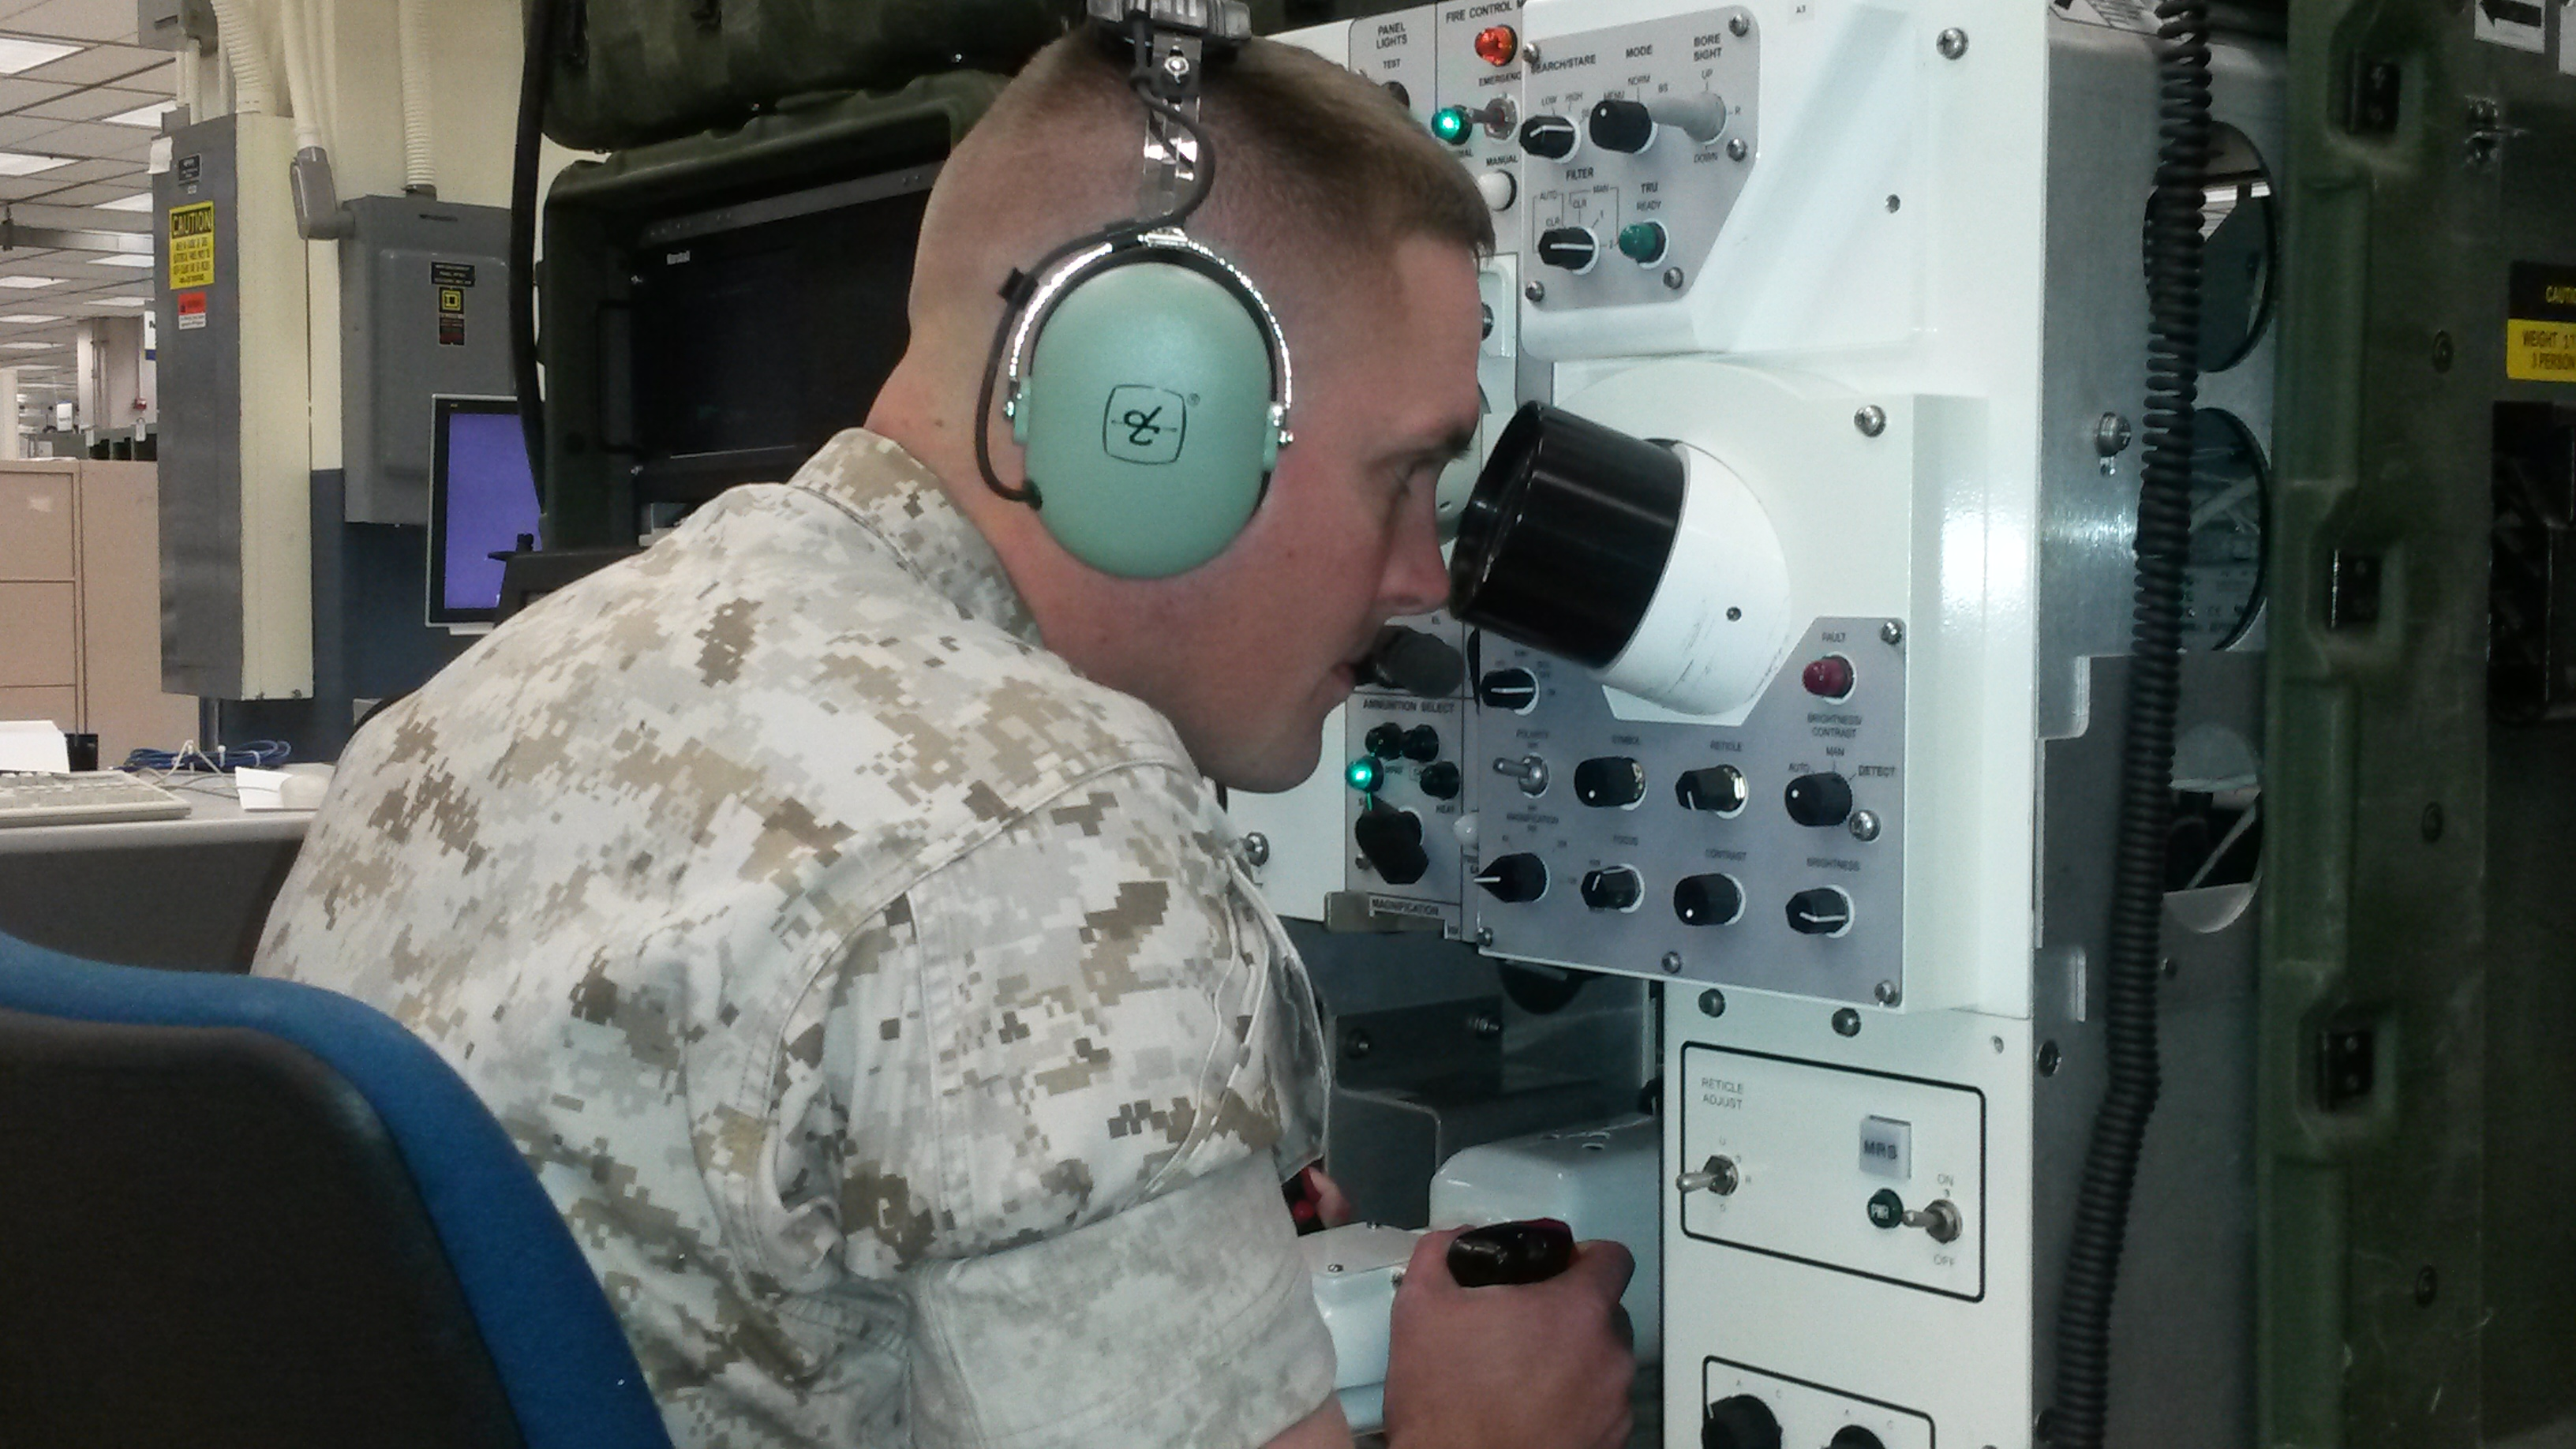 1st Lt. M. Joel Wagaman, project manager at Marine Corps Systems Command's Program Manager Training Systems, demonstrates the use of the Advanced Gunnery Training System—a simulation-based system that provides Marine crews gunnery and tactical training for the M1A1 Main Battle Tank and Light Armored Vehicle. US Marine Corps photo.